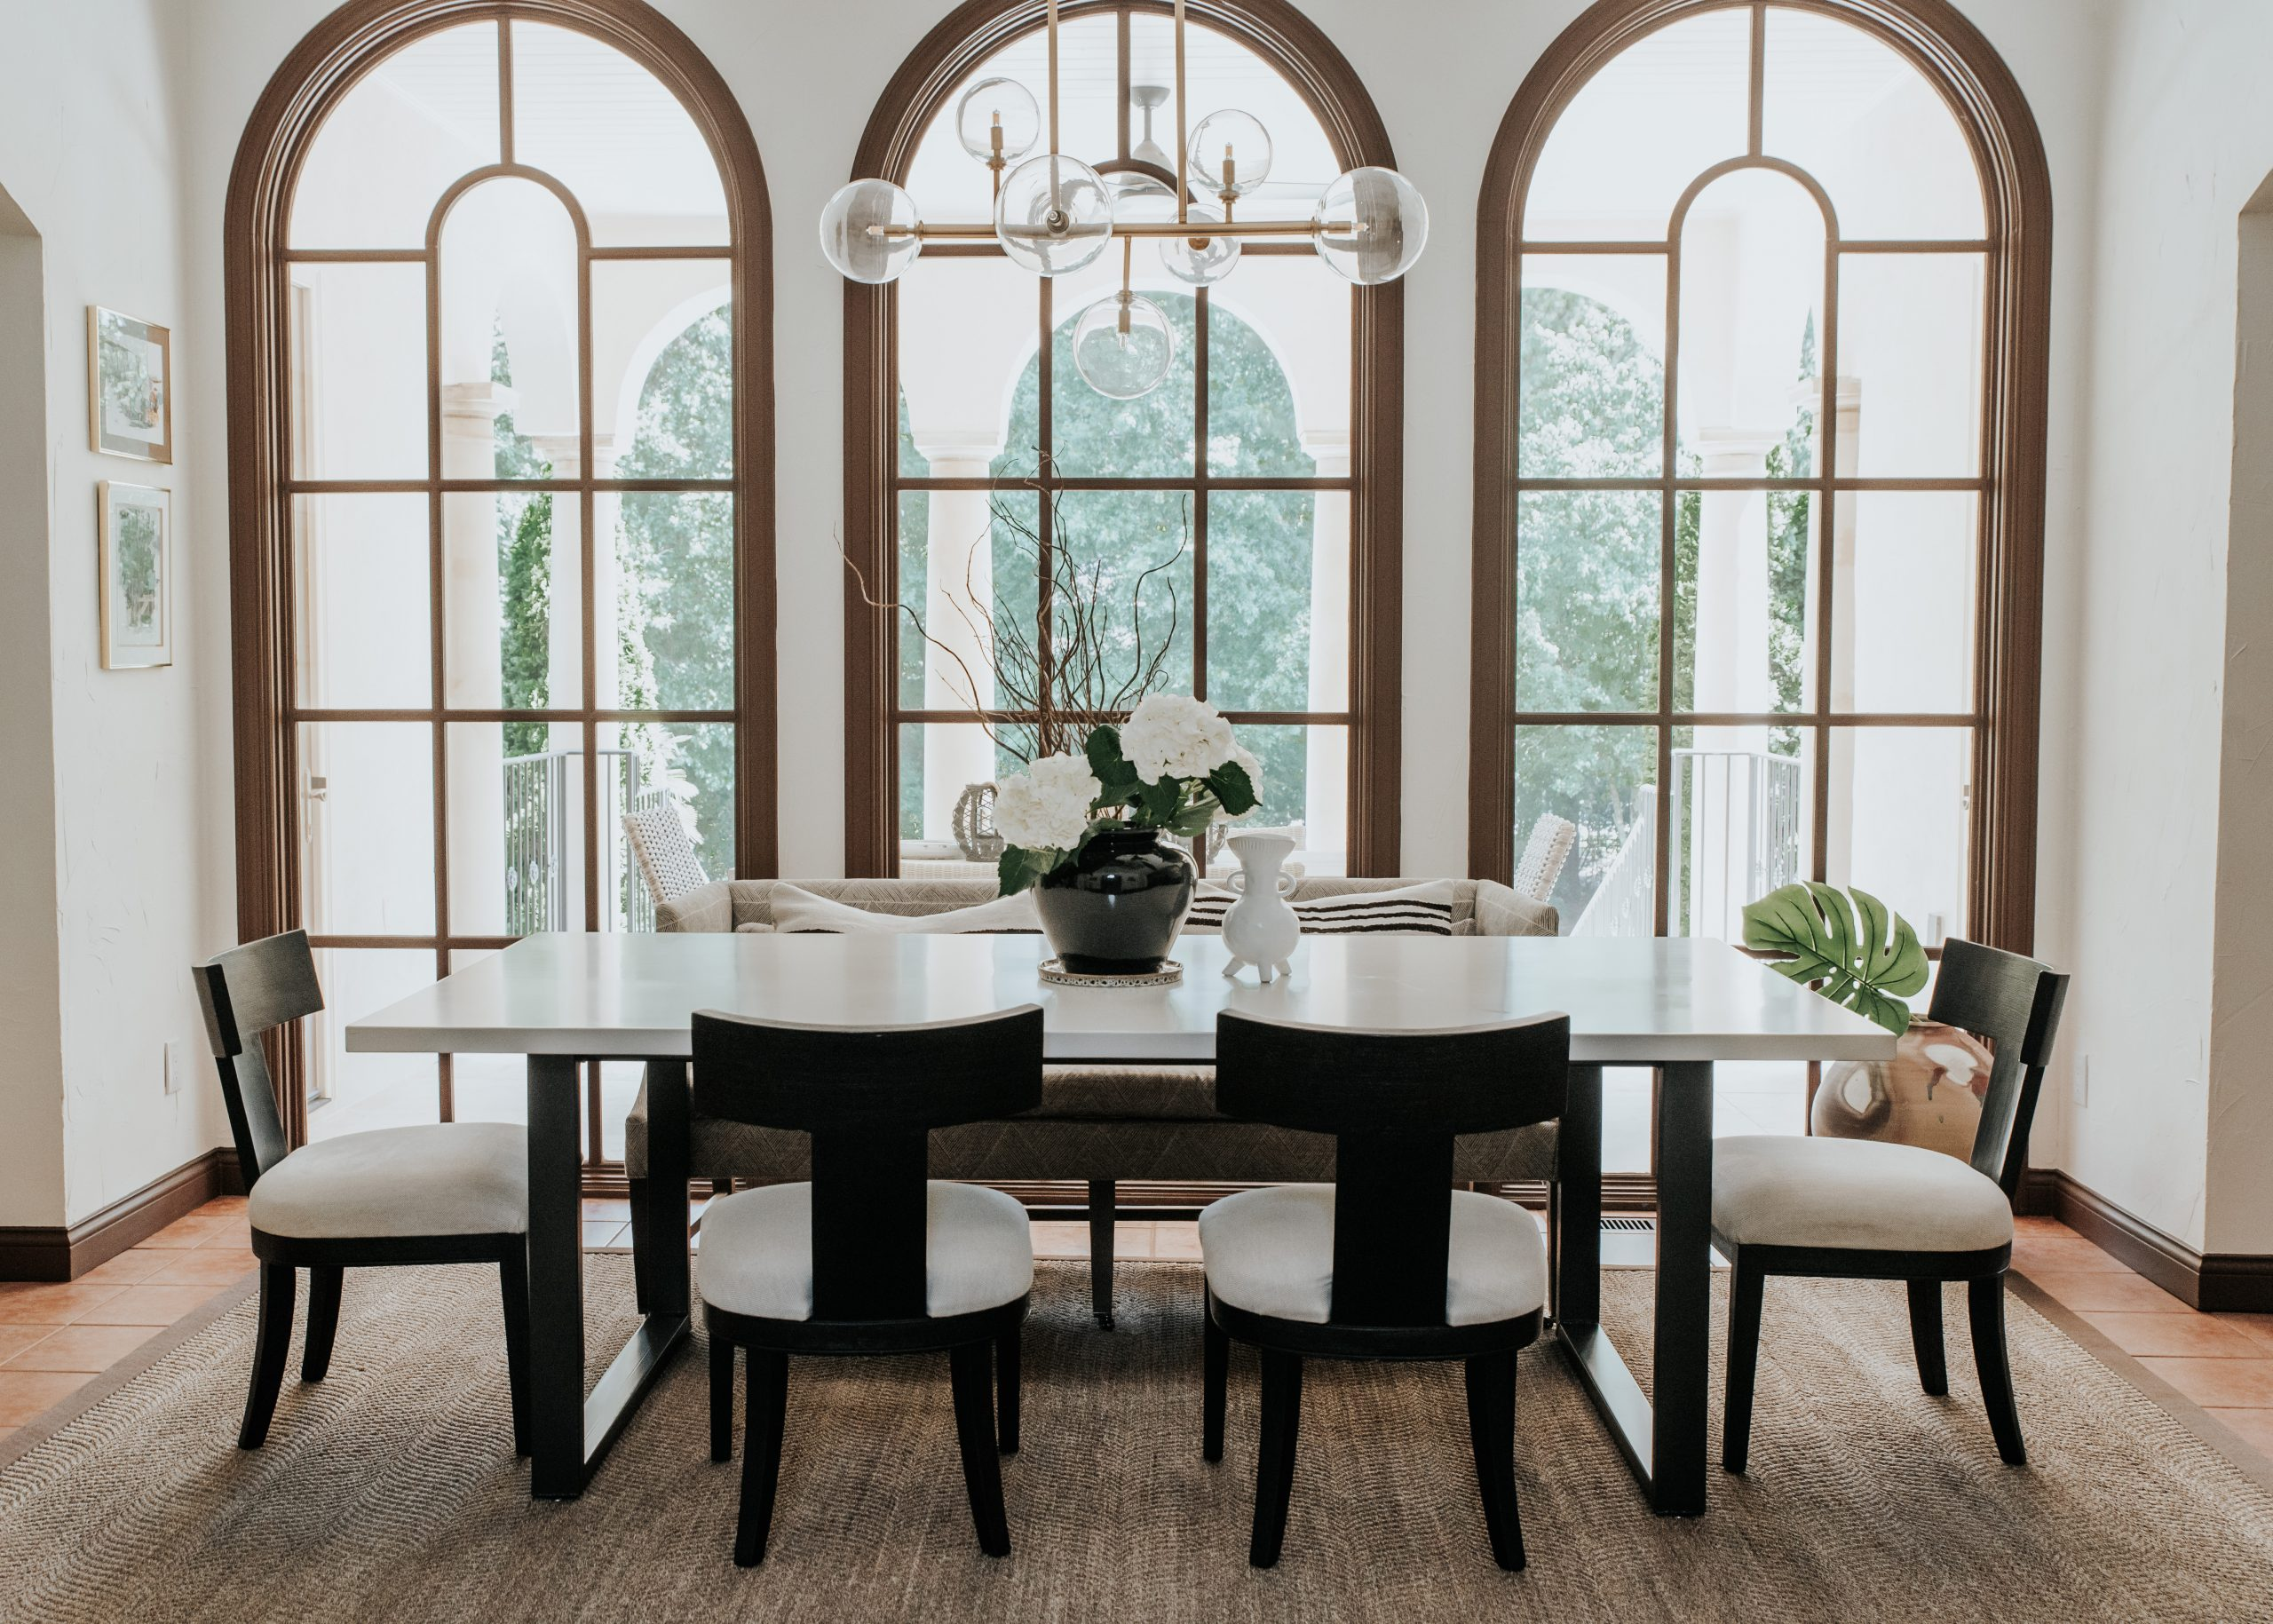 braylon square dining table in front of the windows